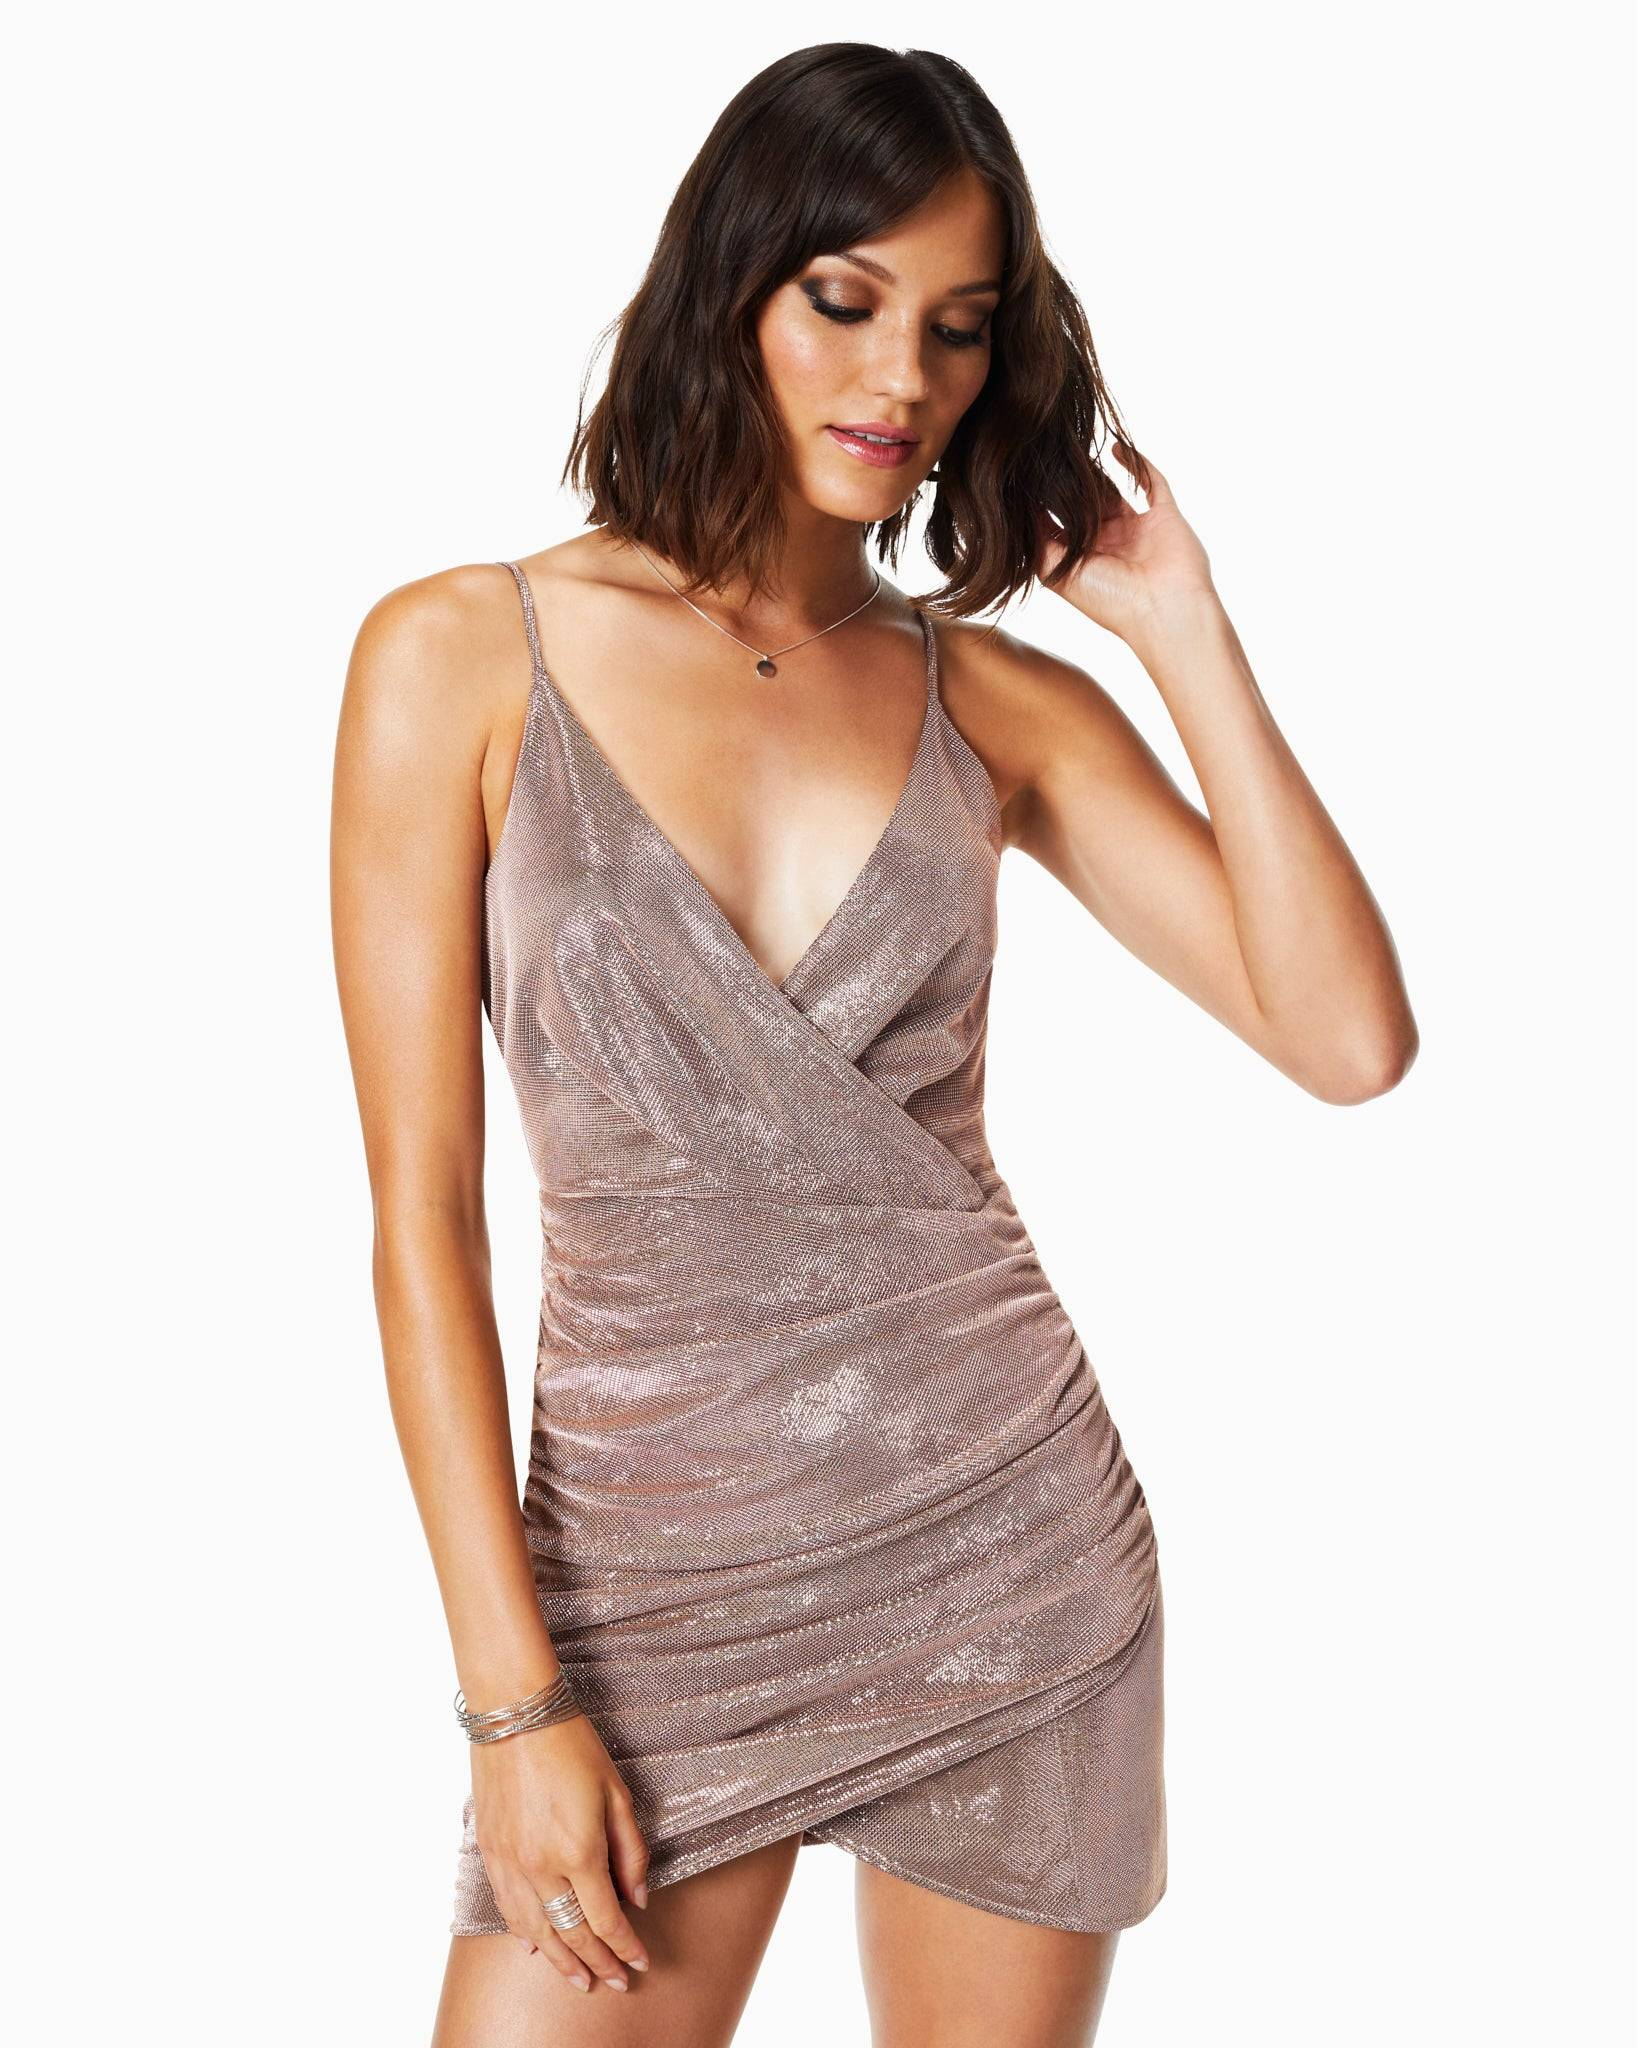 Madilyn Ruched Mini Dress in Holiday Blush - Holiday Blush - Size: 0